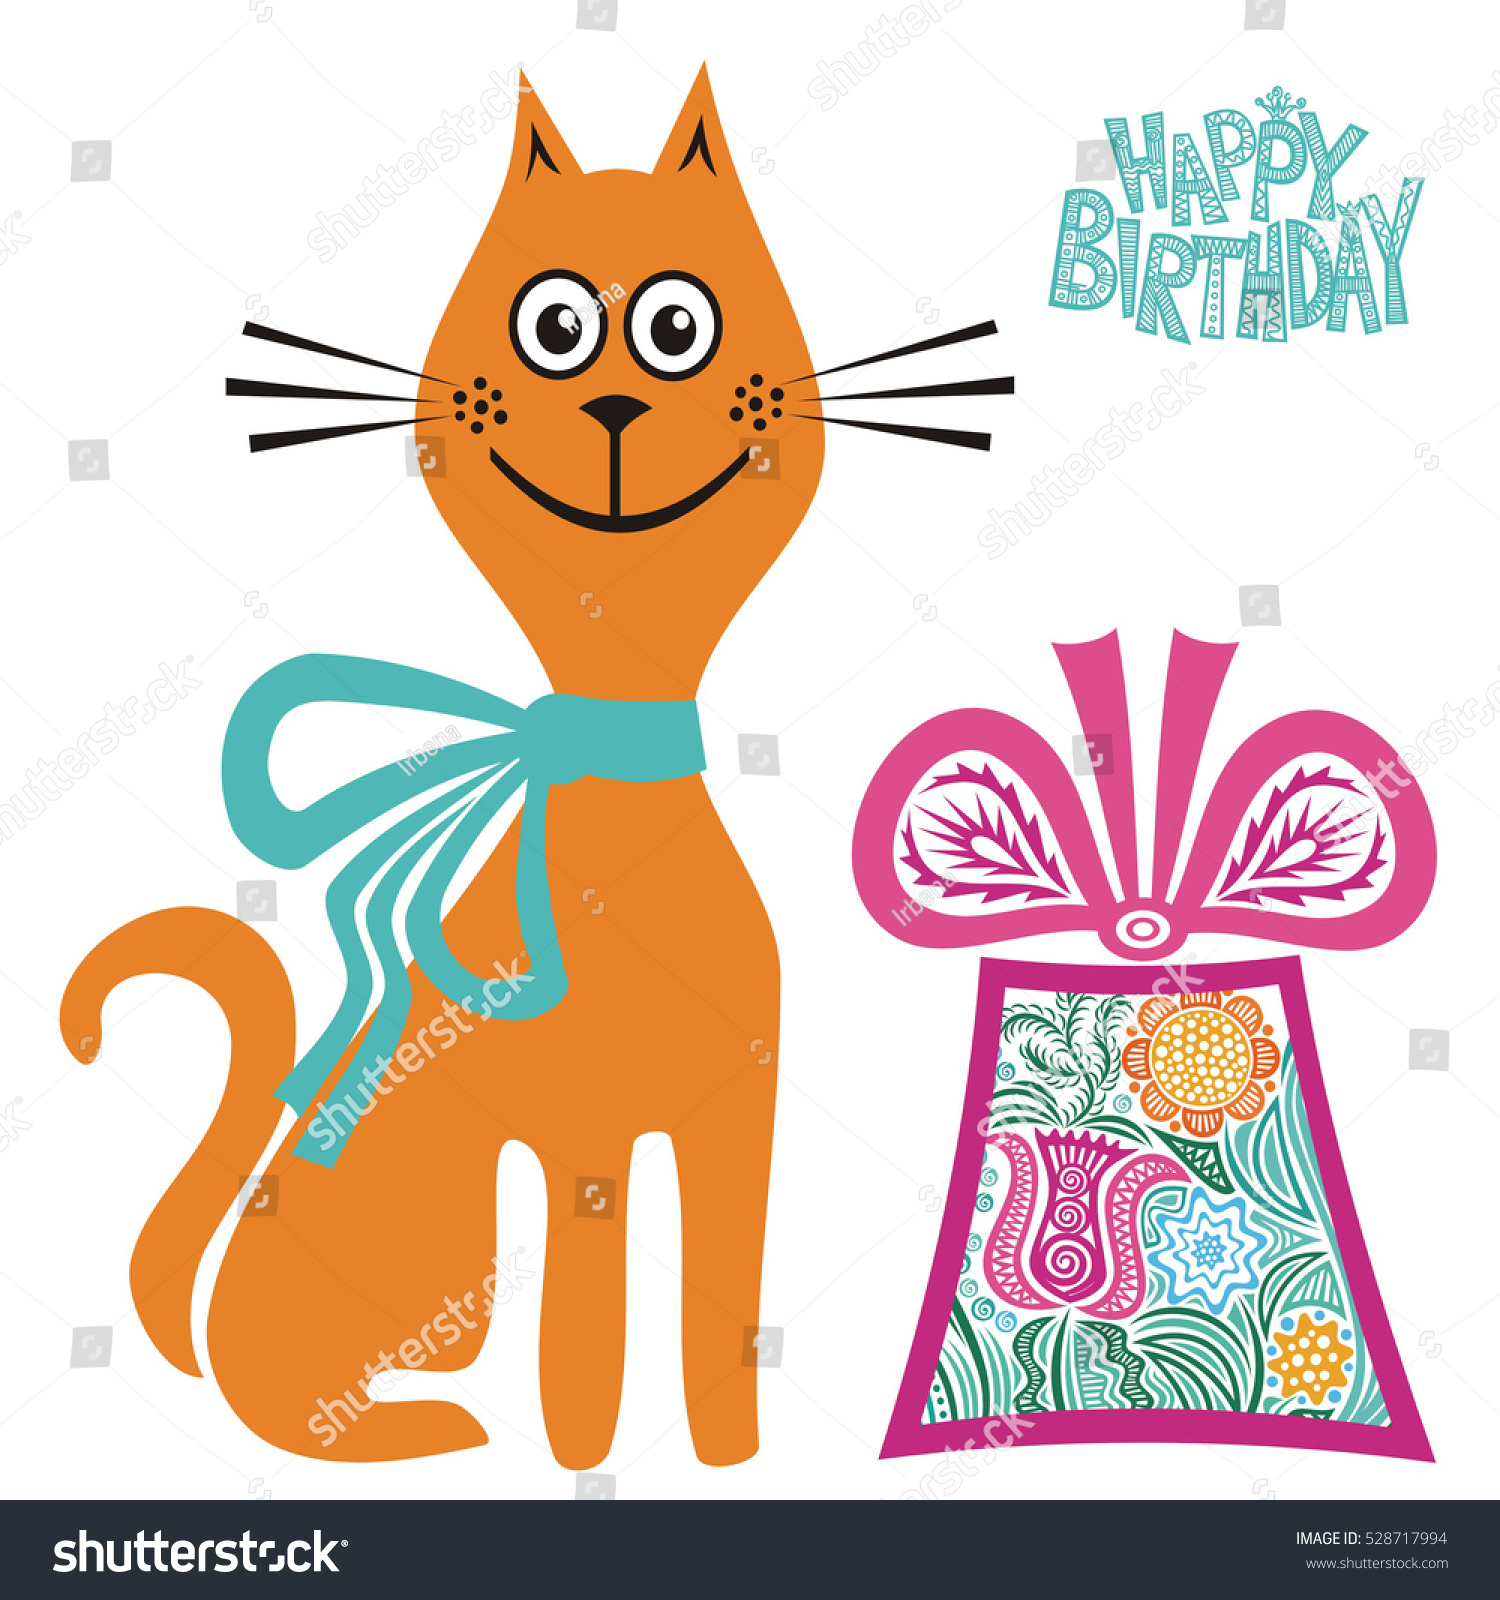 Happy Birthday Greeting Card Cute Cartoon Stock Vector